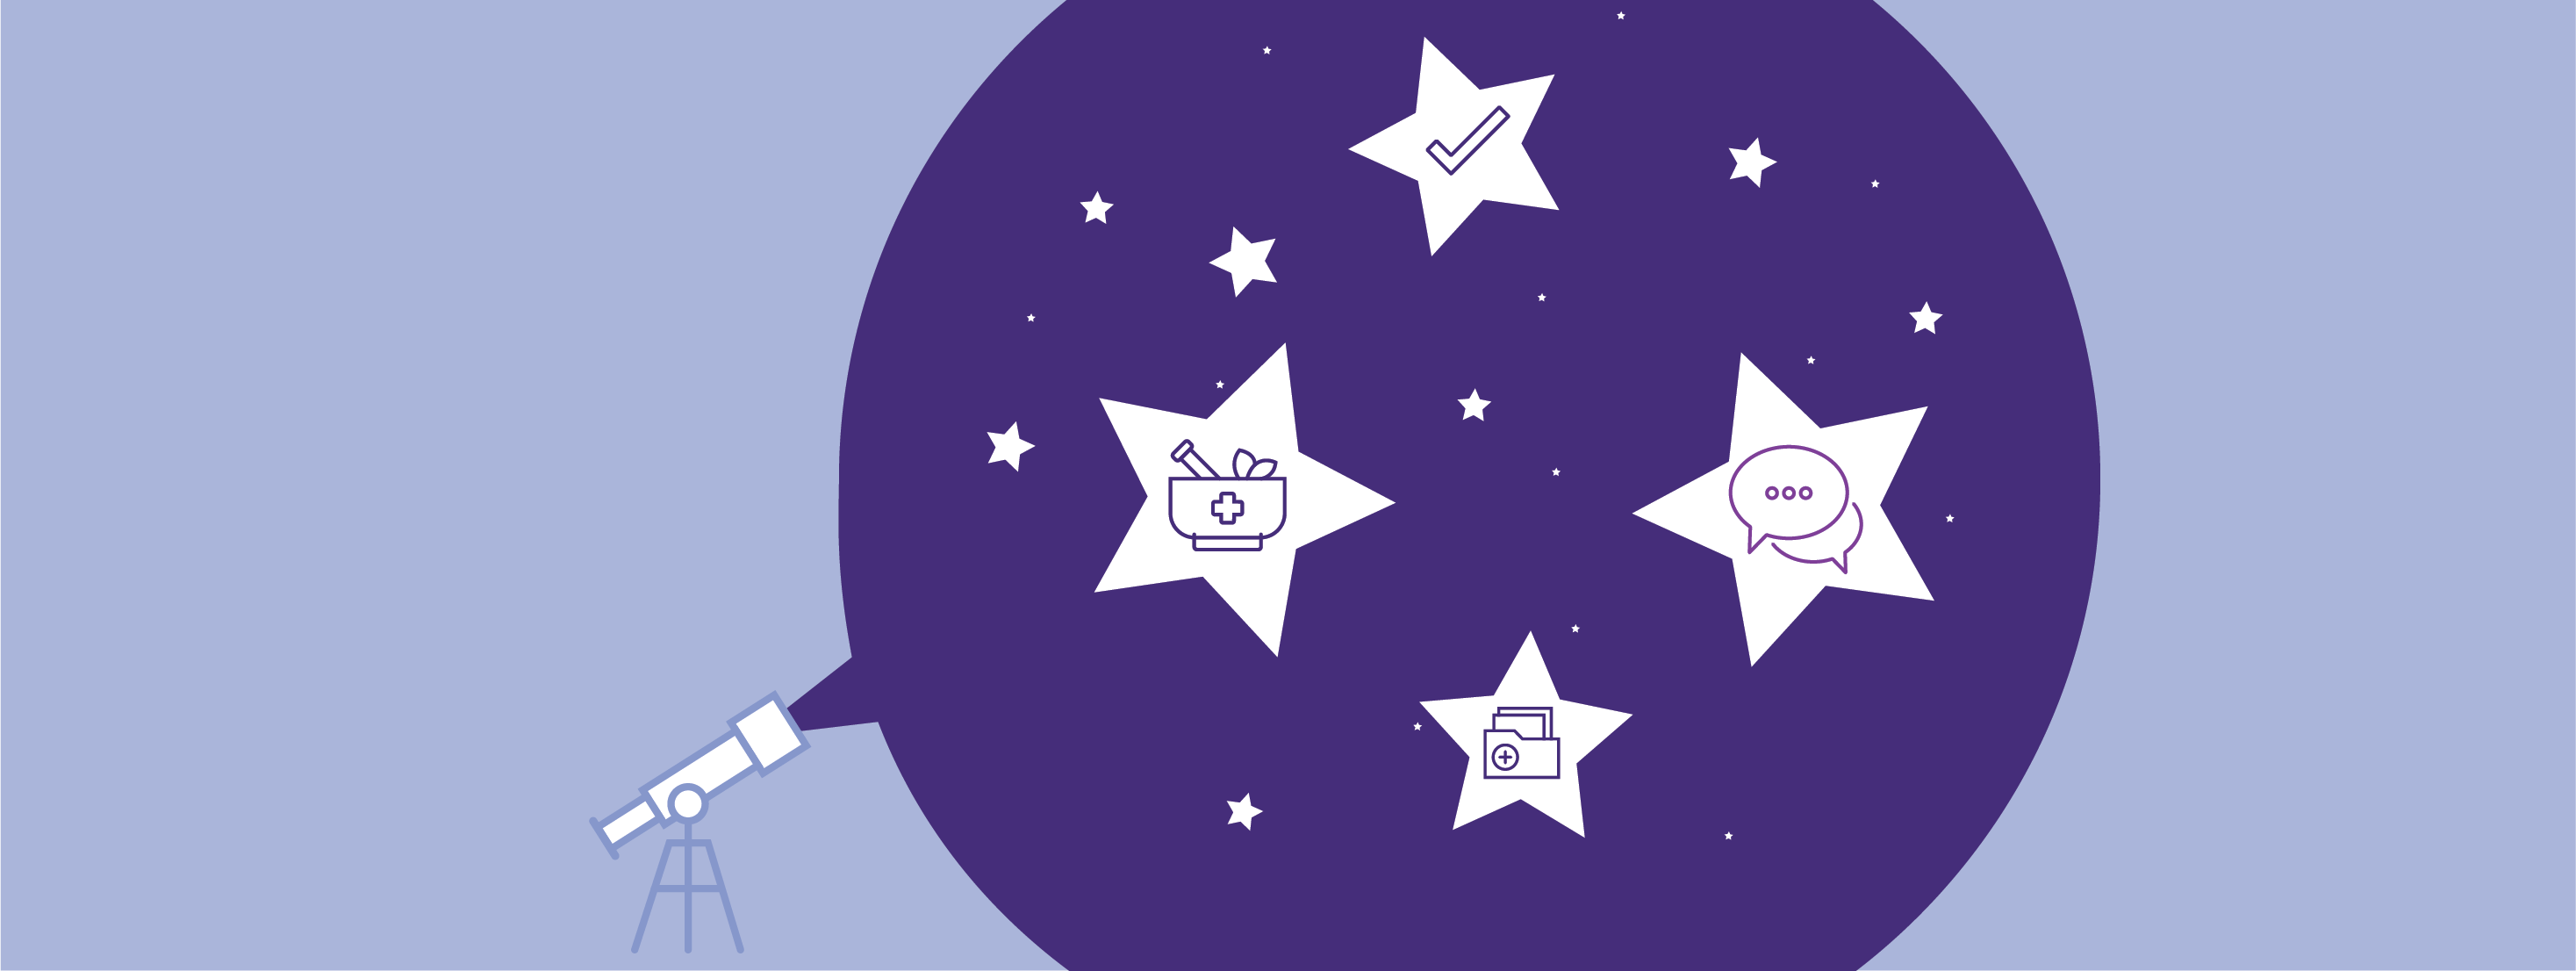 What's In the Stars for Managed Care?